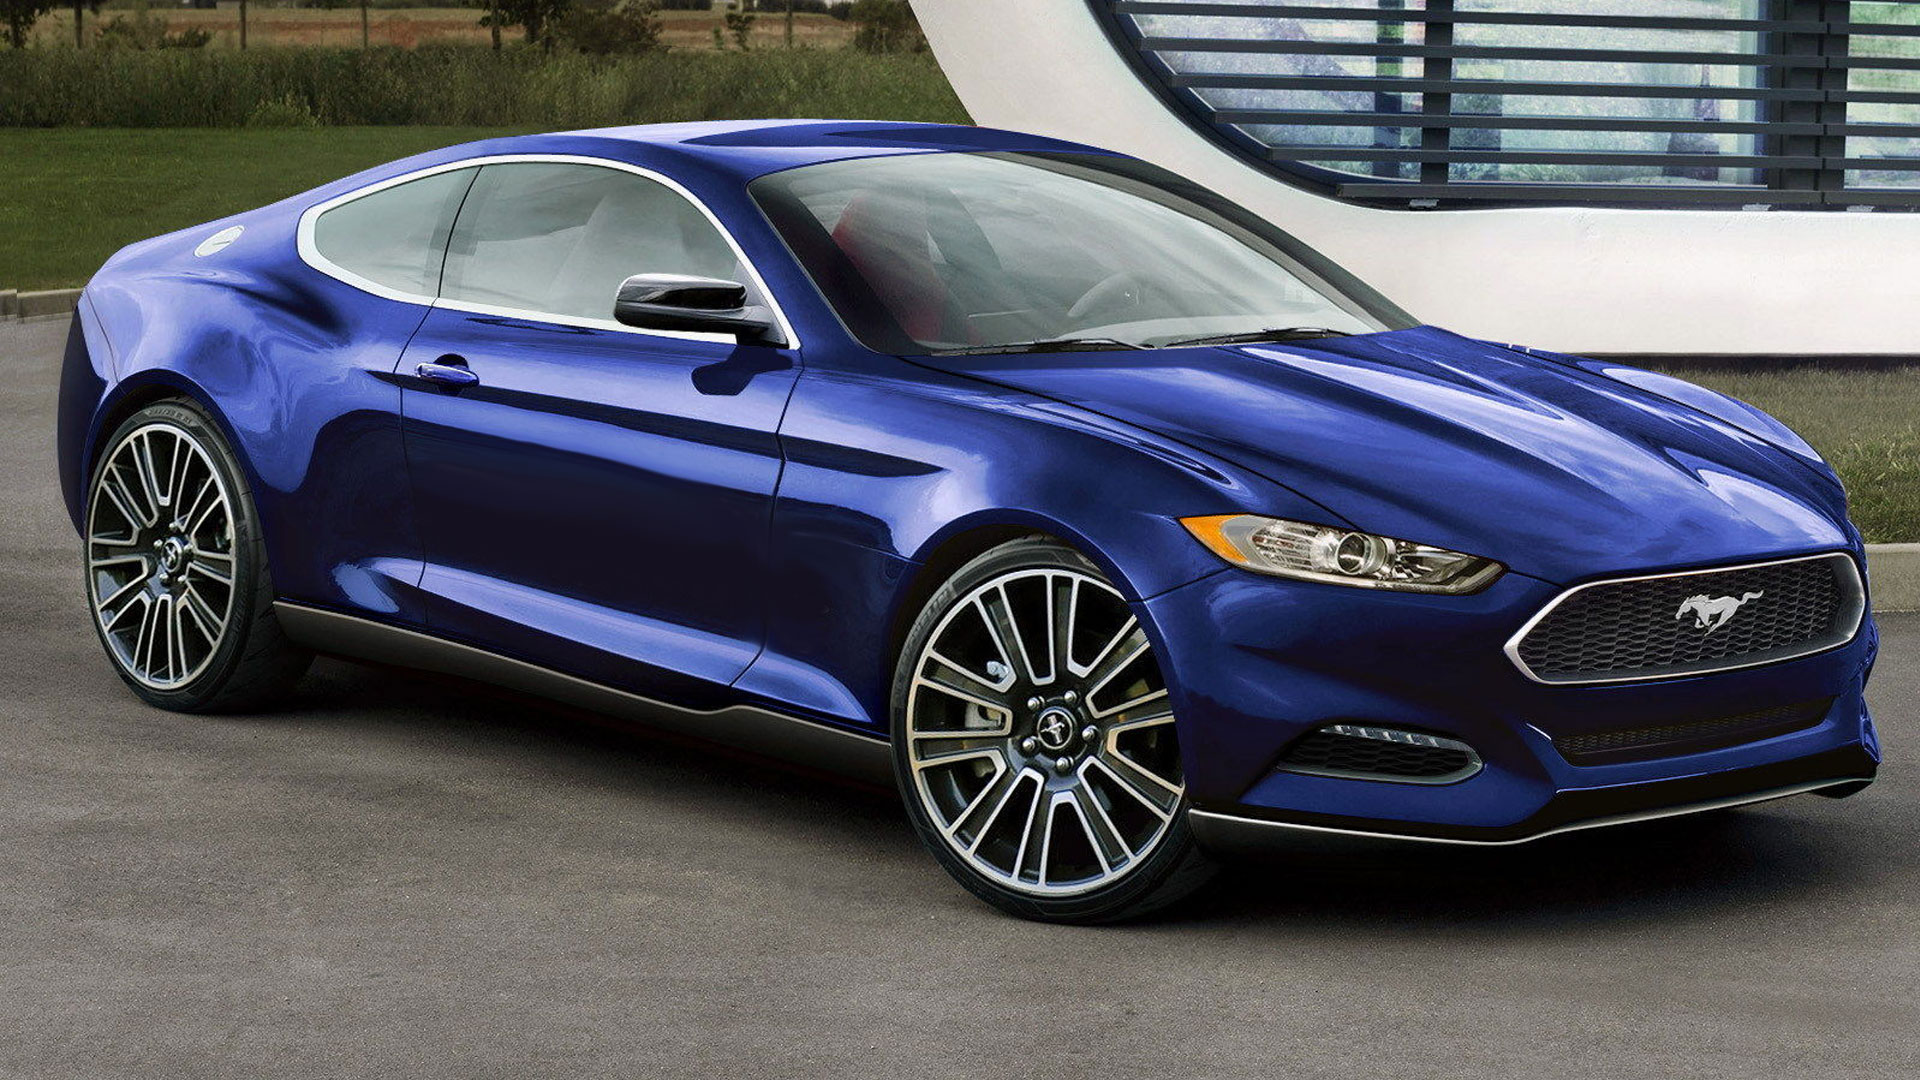 pirelli p zero new fitments on ford 2015 mustang gt your next tire blog. Black Bedroom Furniture Sets. Home Design Ideas